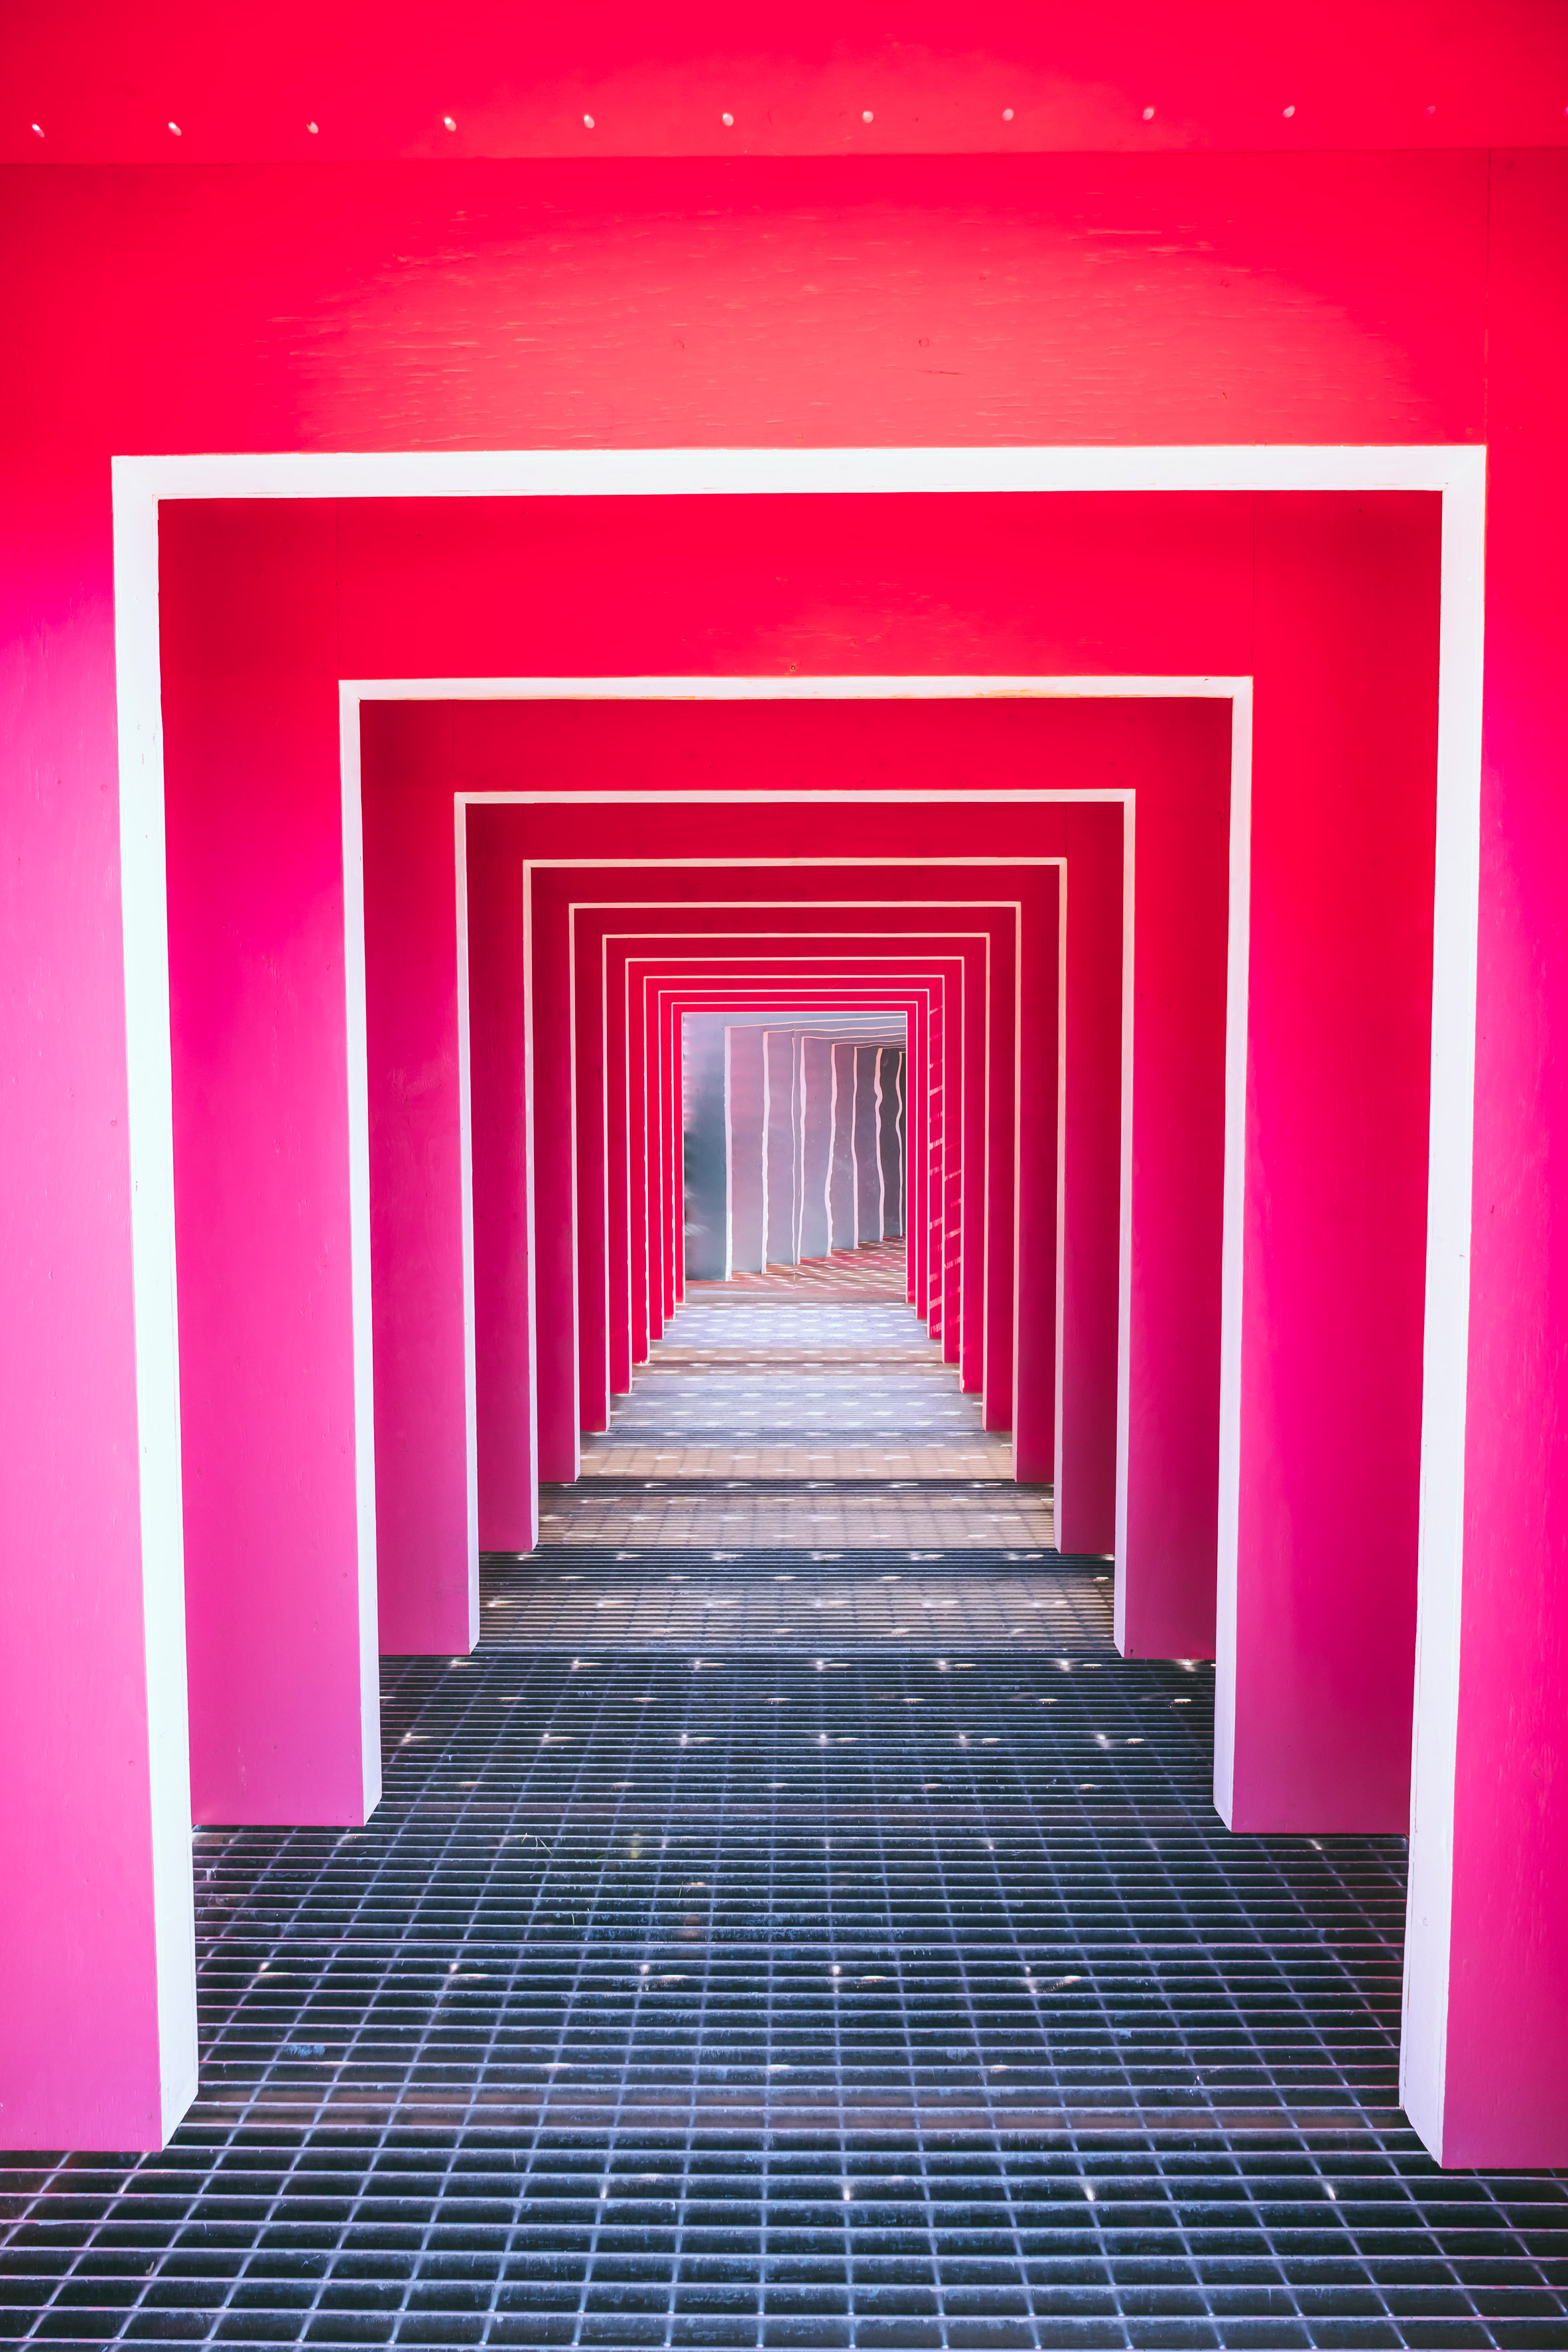 Instagram-friendly pink tunnel among Passages Insolites installations in Quebec City